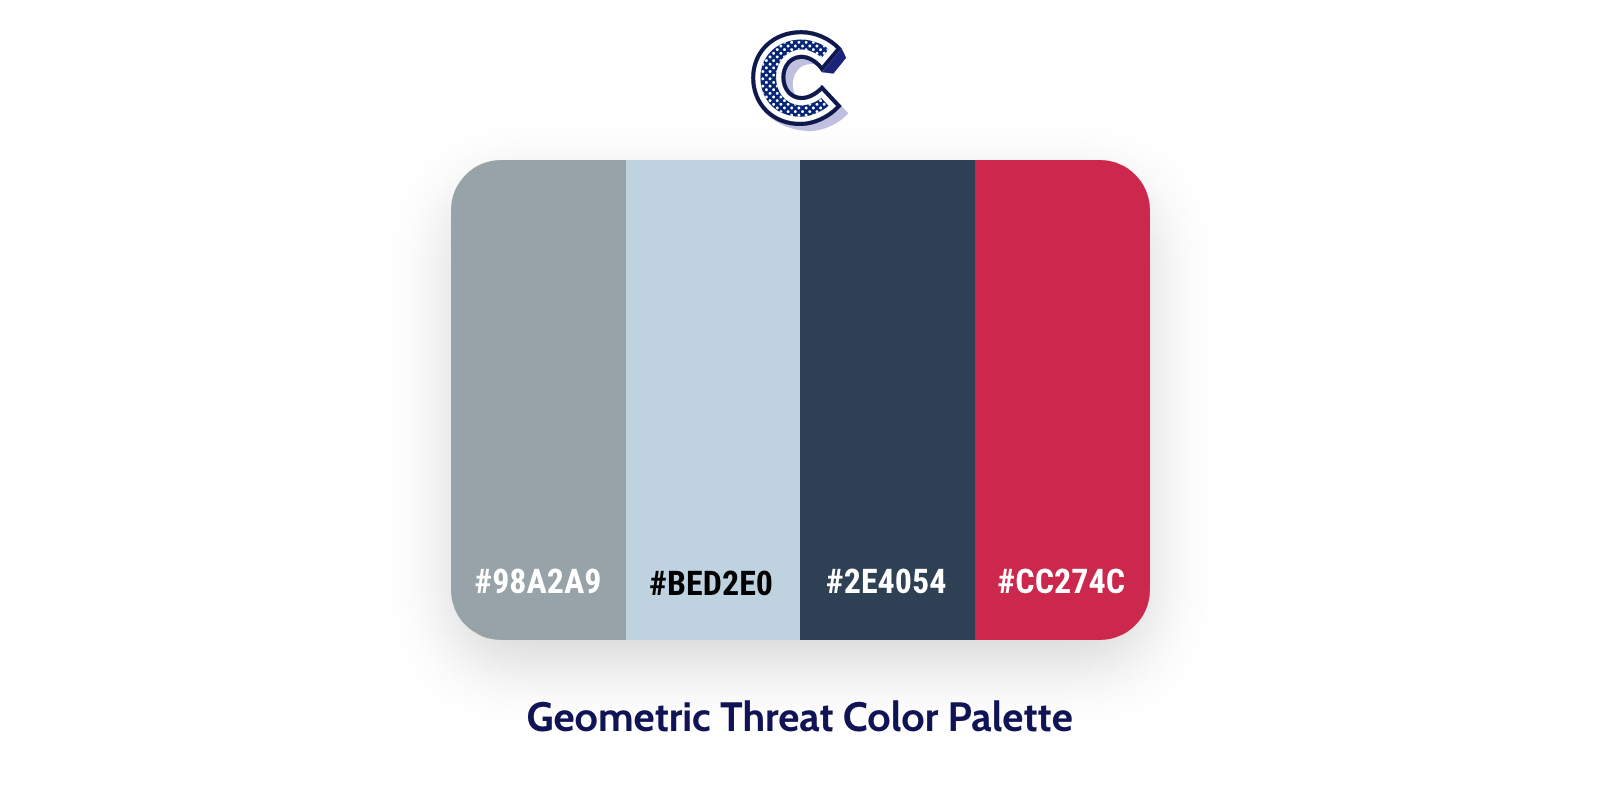 teh featured image of geometric threat color palette